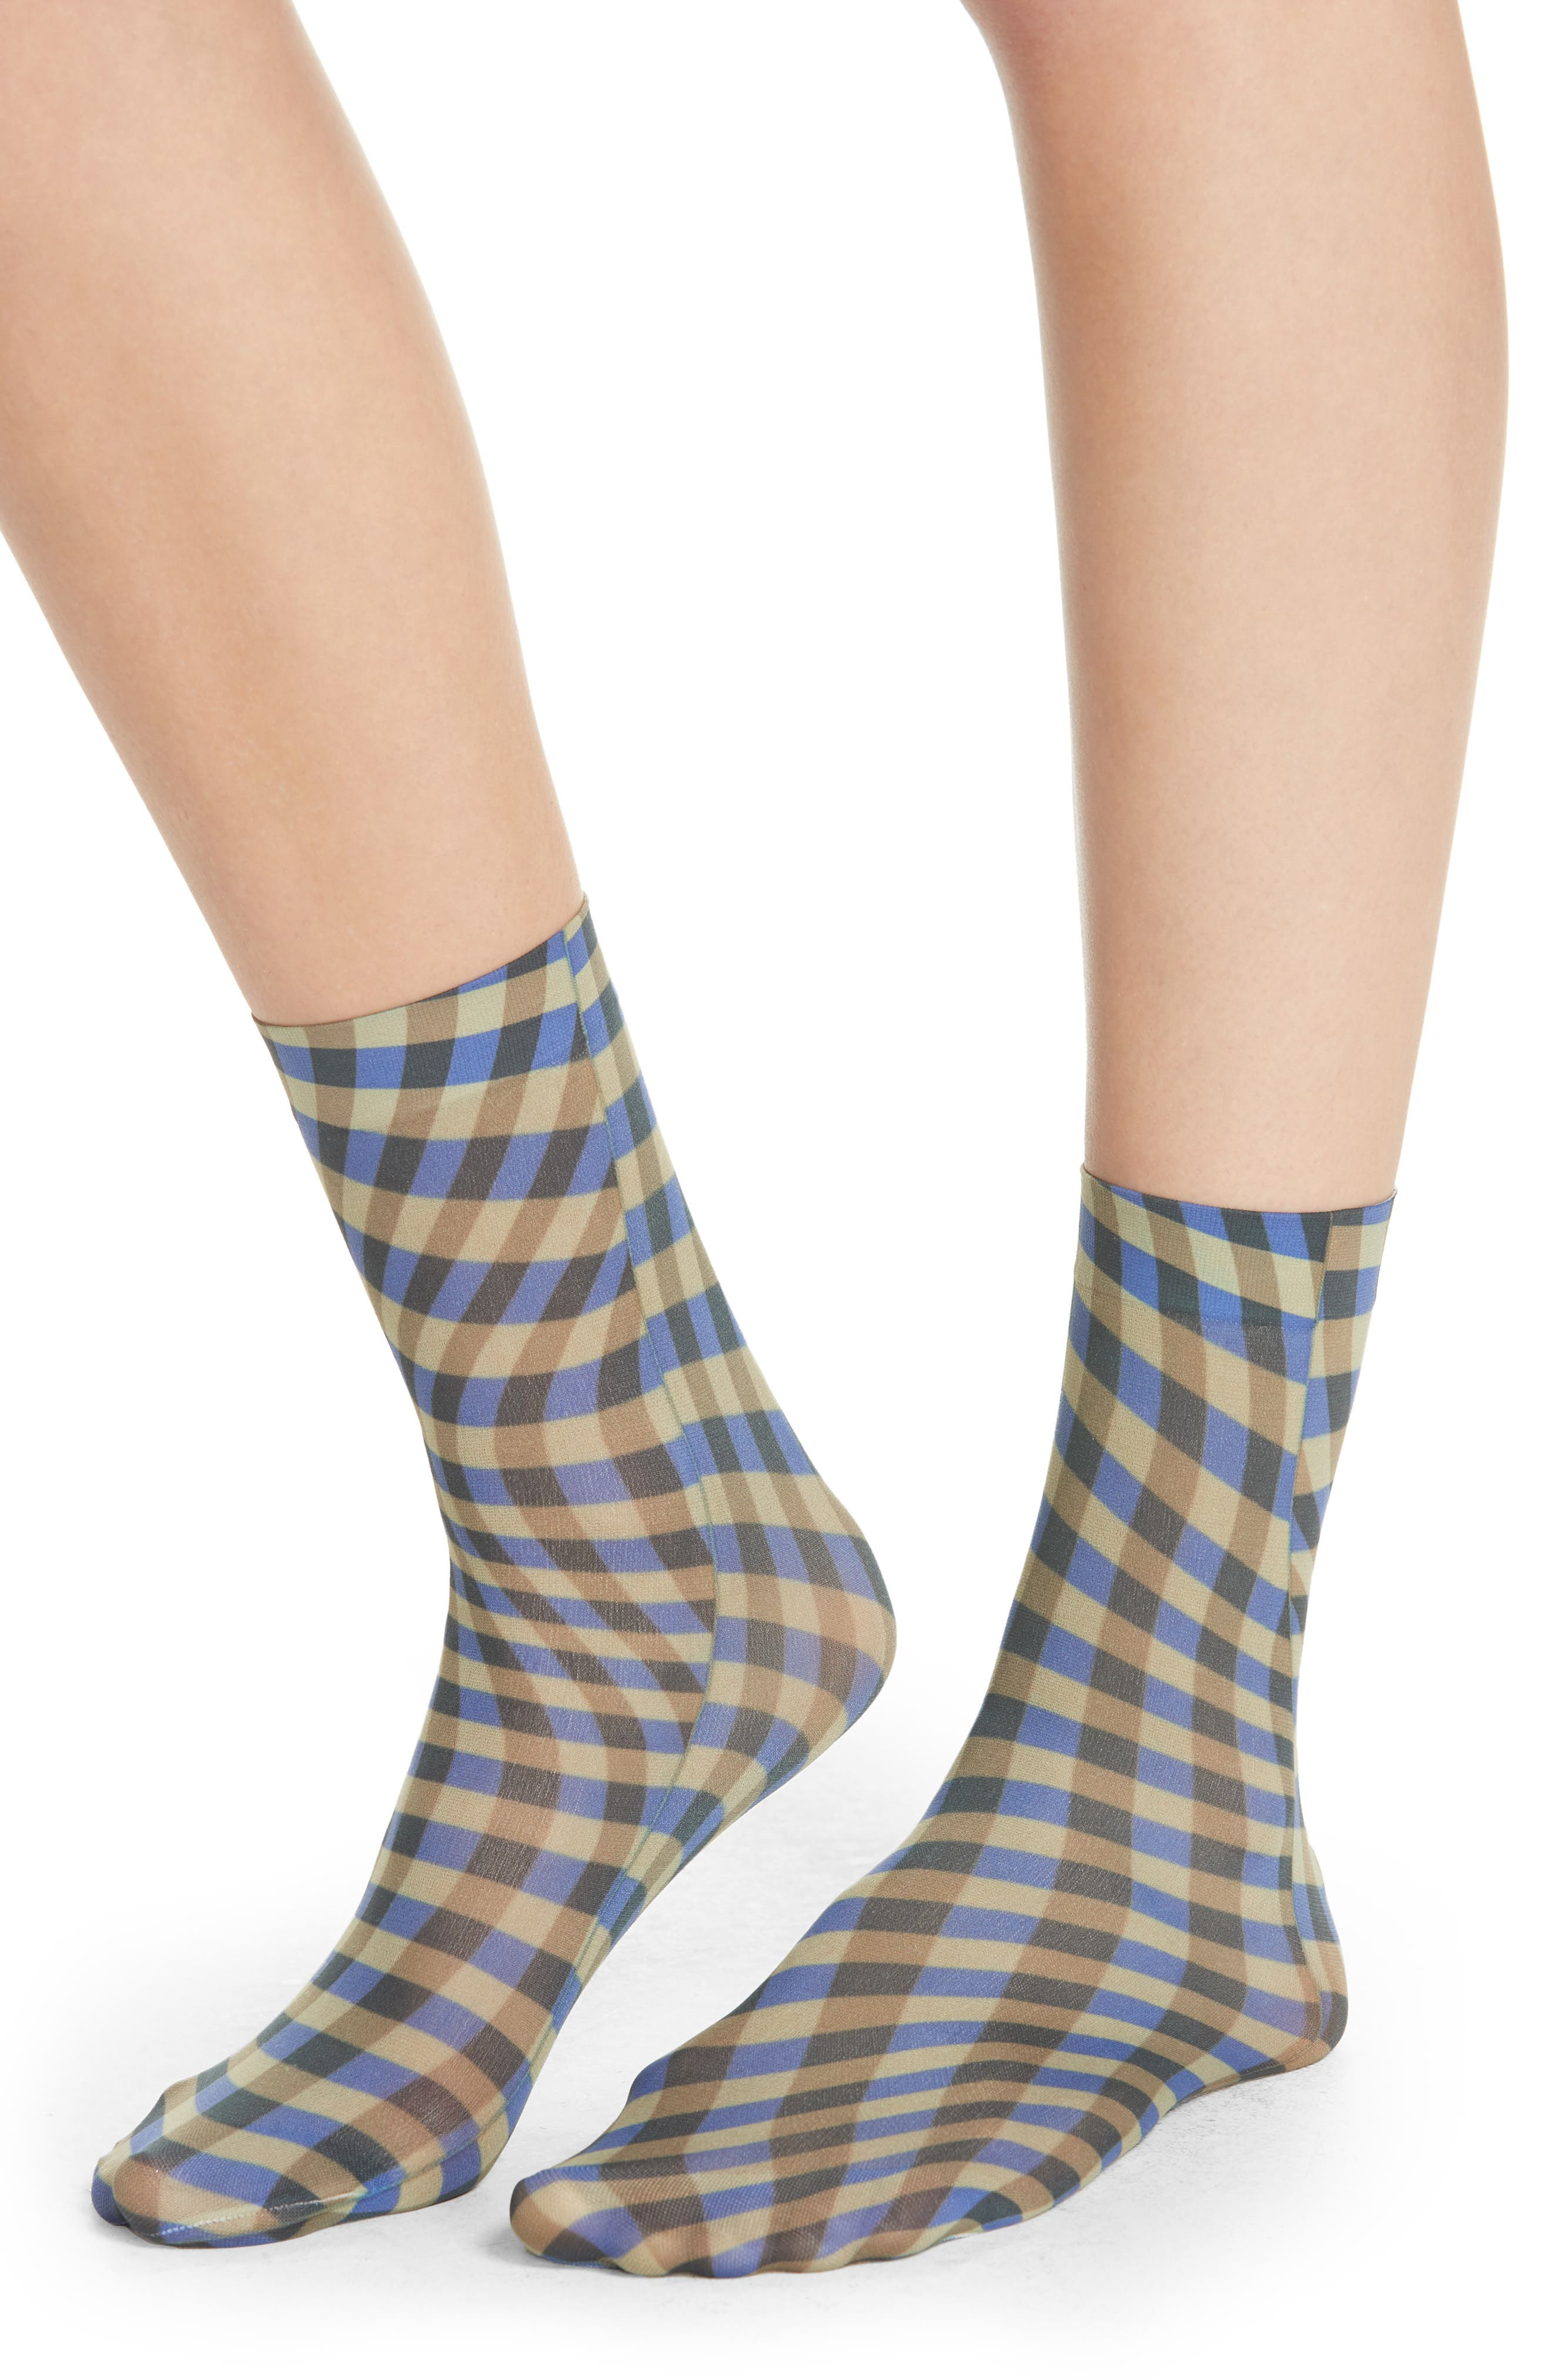 Bojana Print Socks,                             Main thumbnail 1, color,                             300